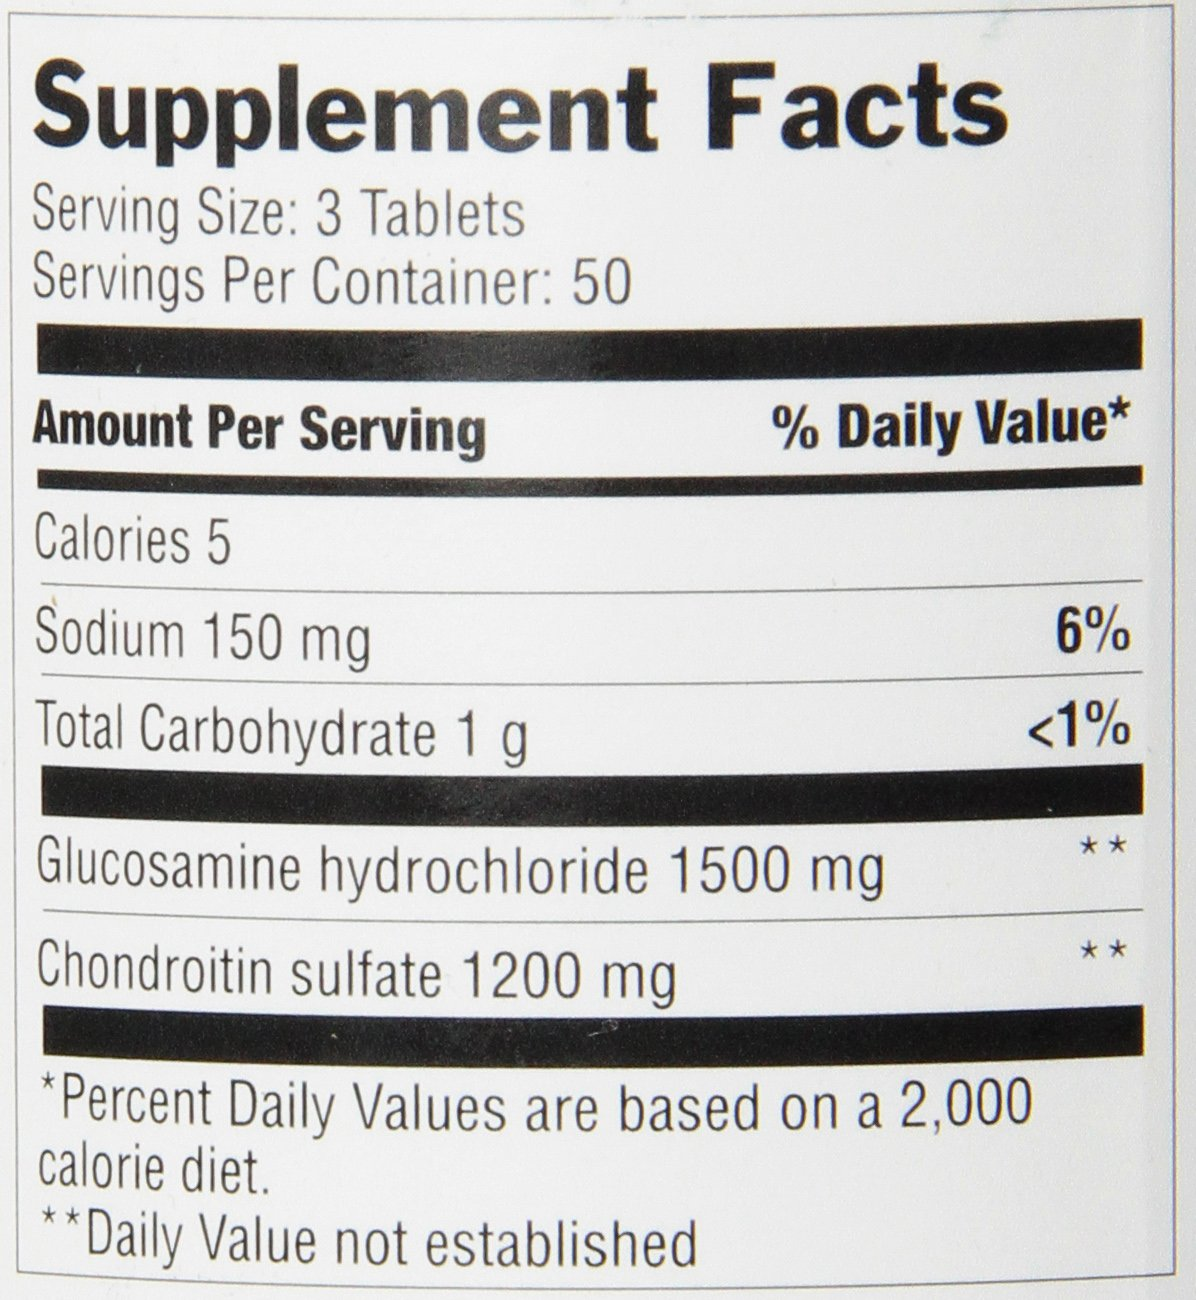 Amazon.com: Optimum Glucosamine and Chondroitin Tablets, 150 Count: Health & Personal Care